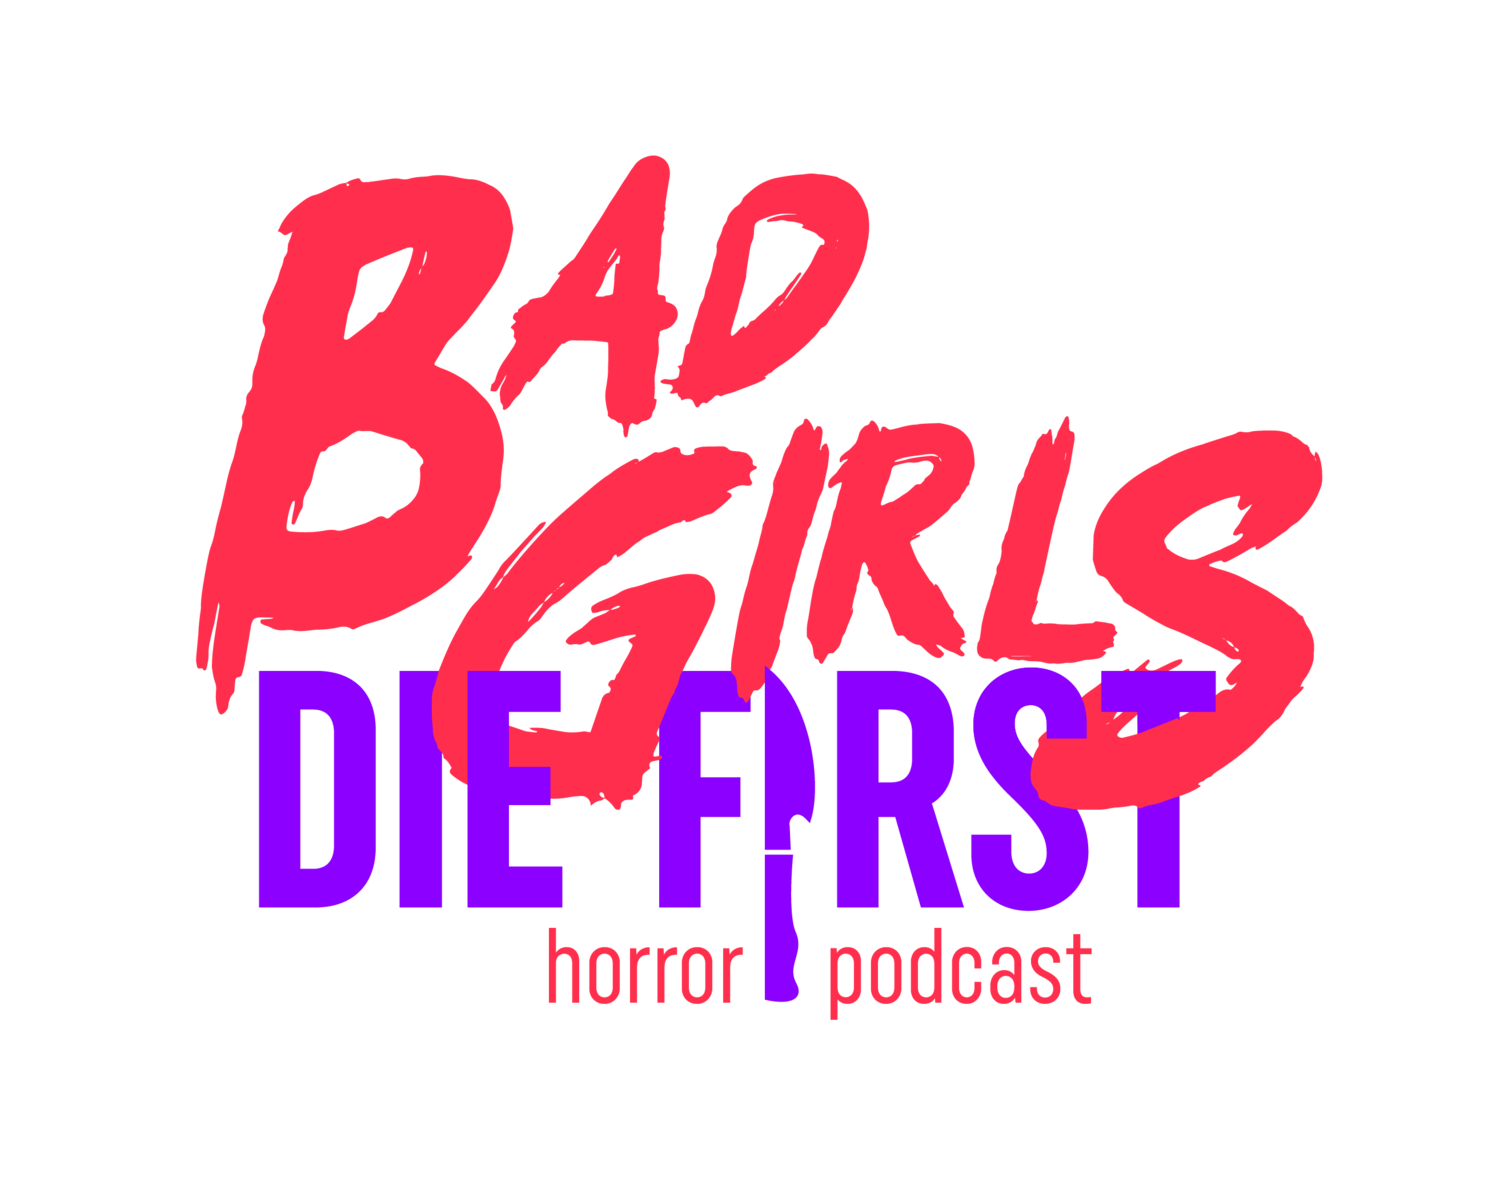 Bad Girls Die First: Horror Podcast